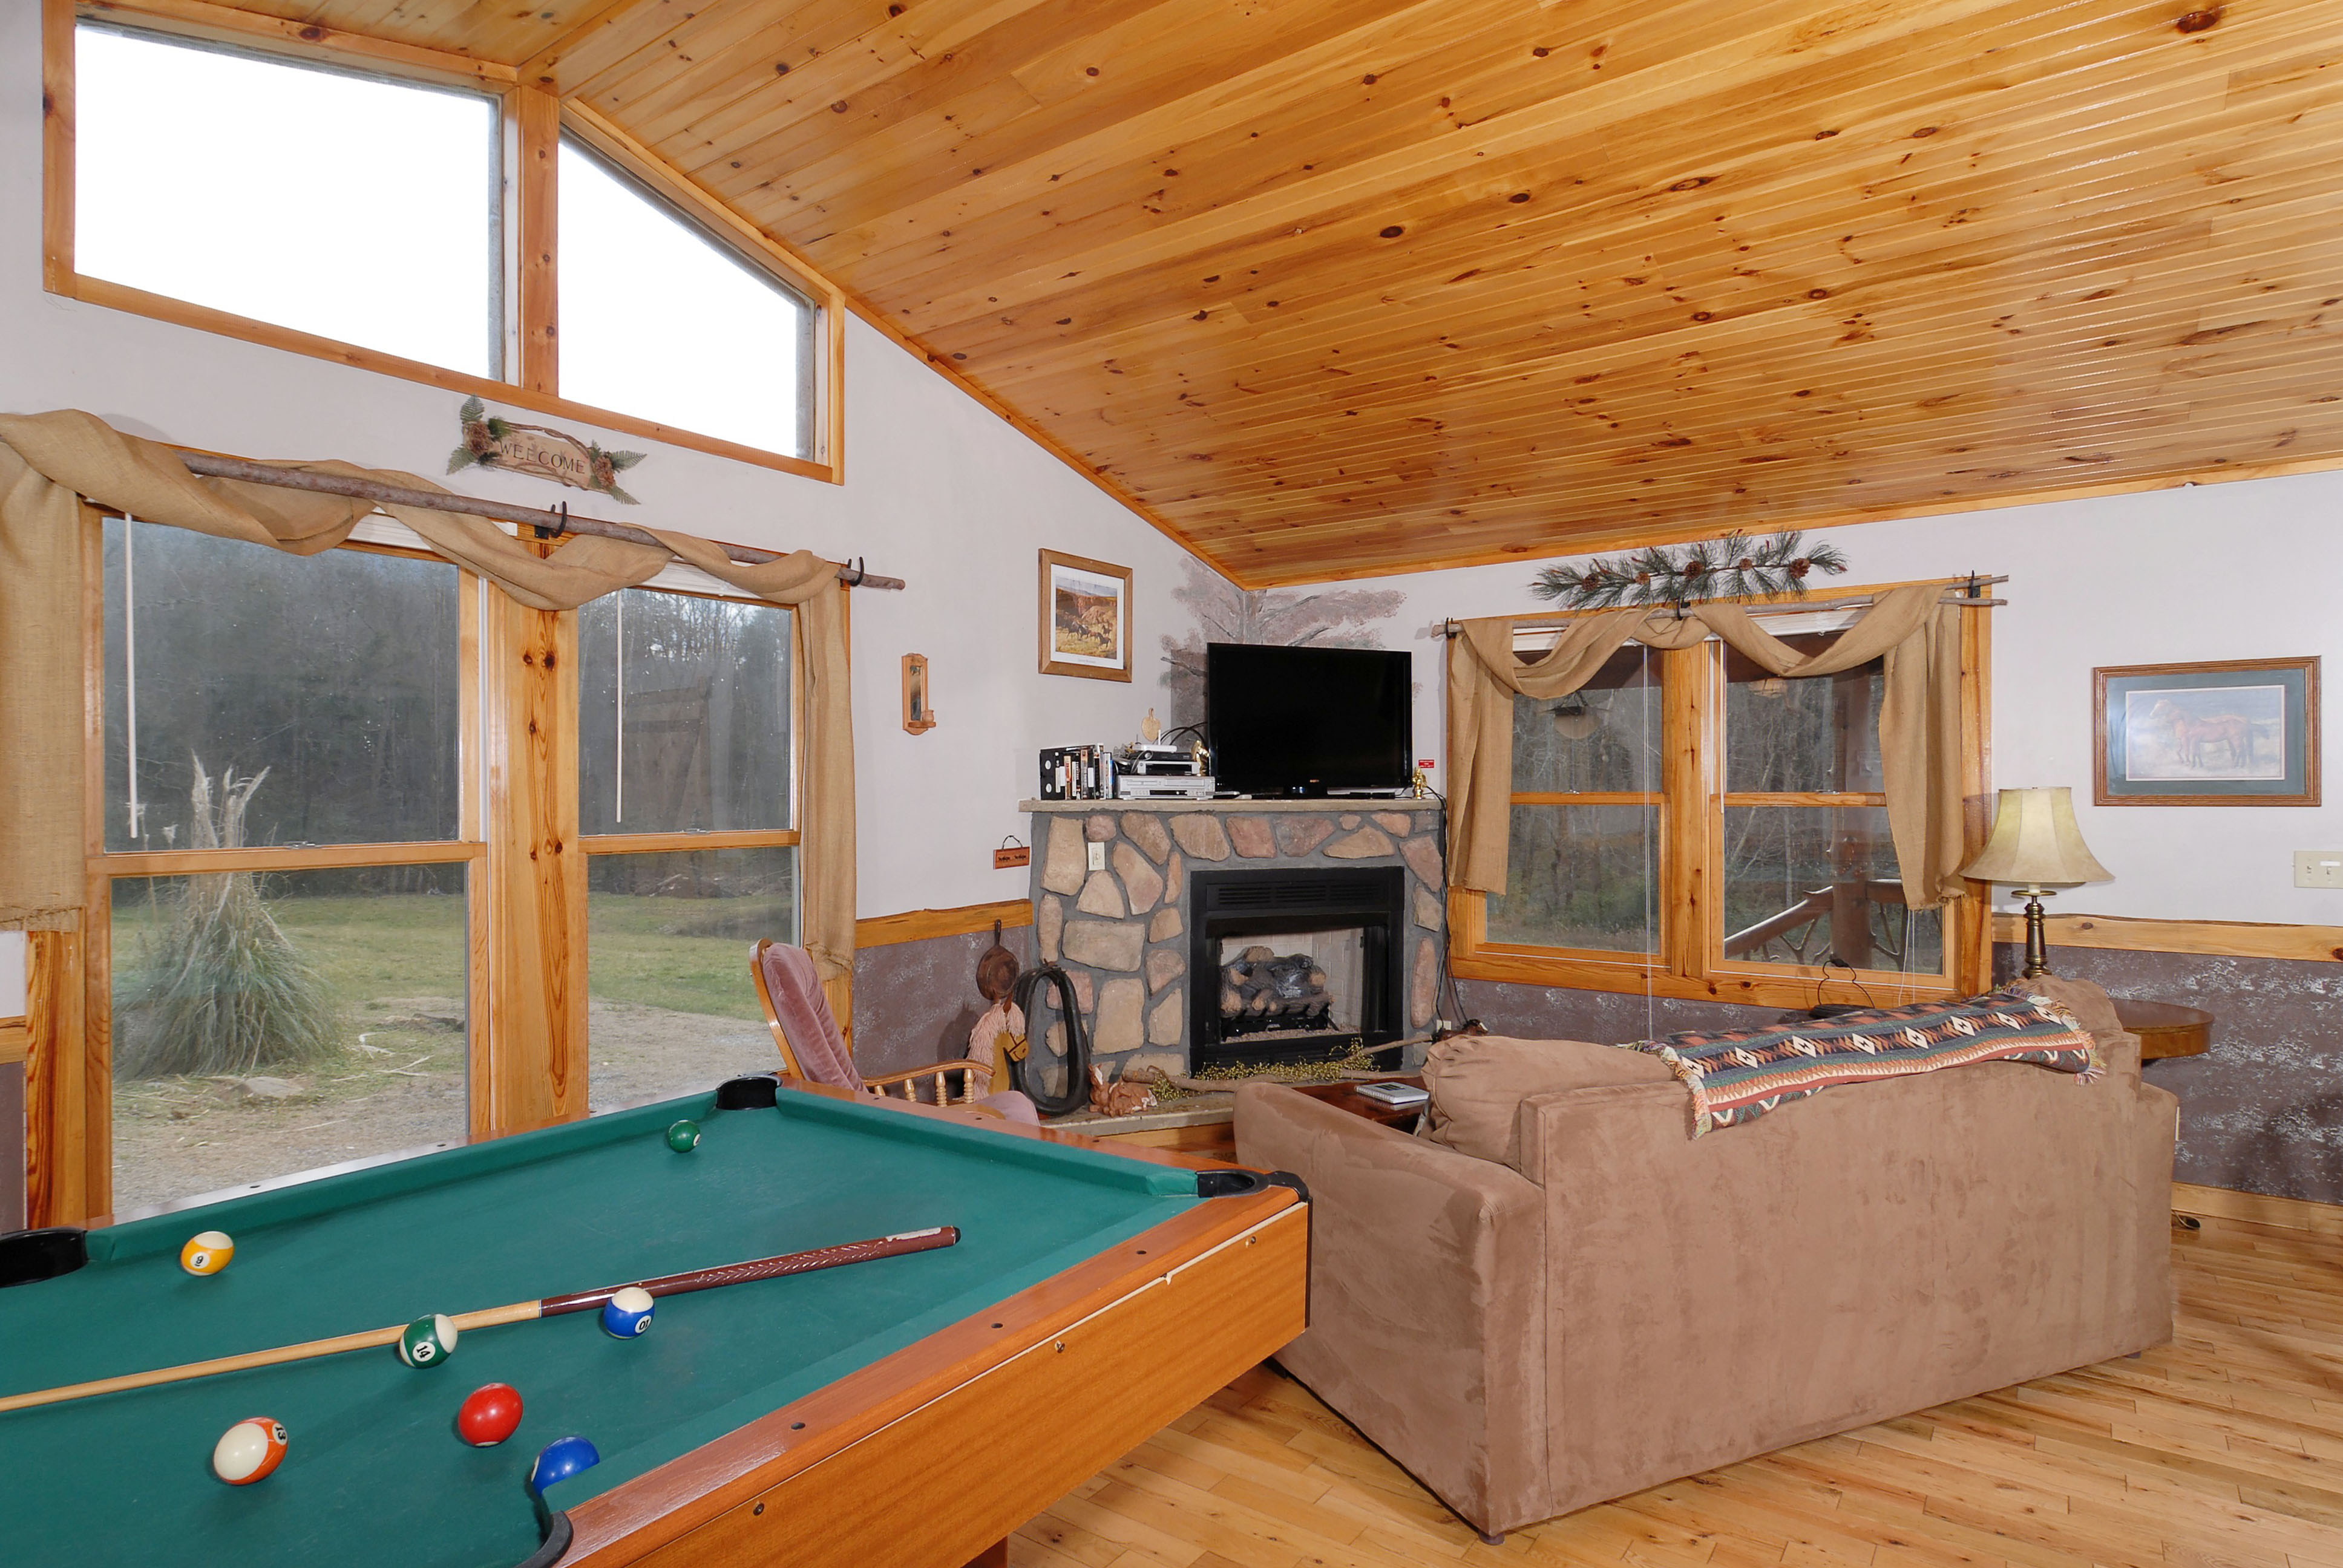 Pigeon Forge One Bedroom Cabin with a pool table that over looks the living room area